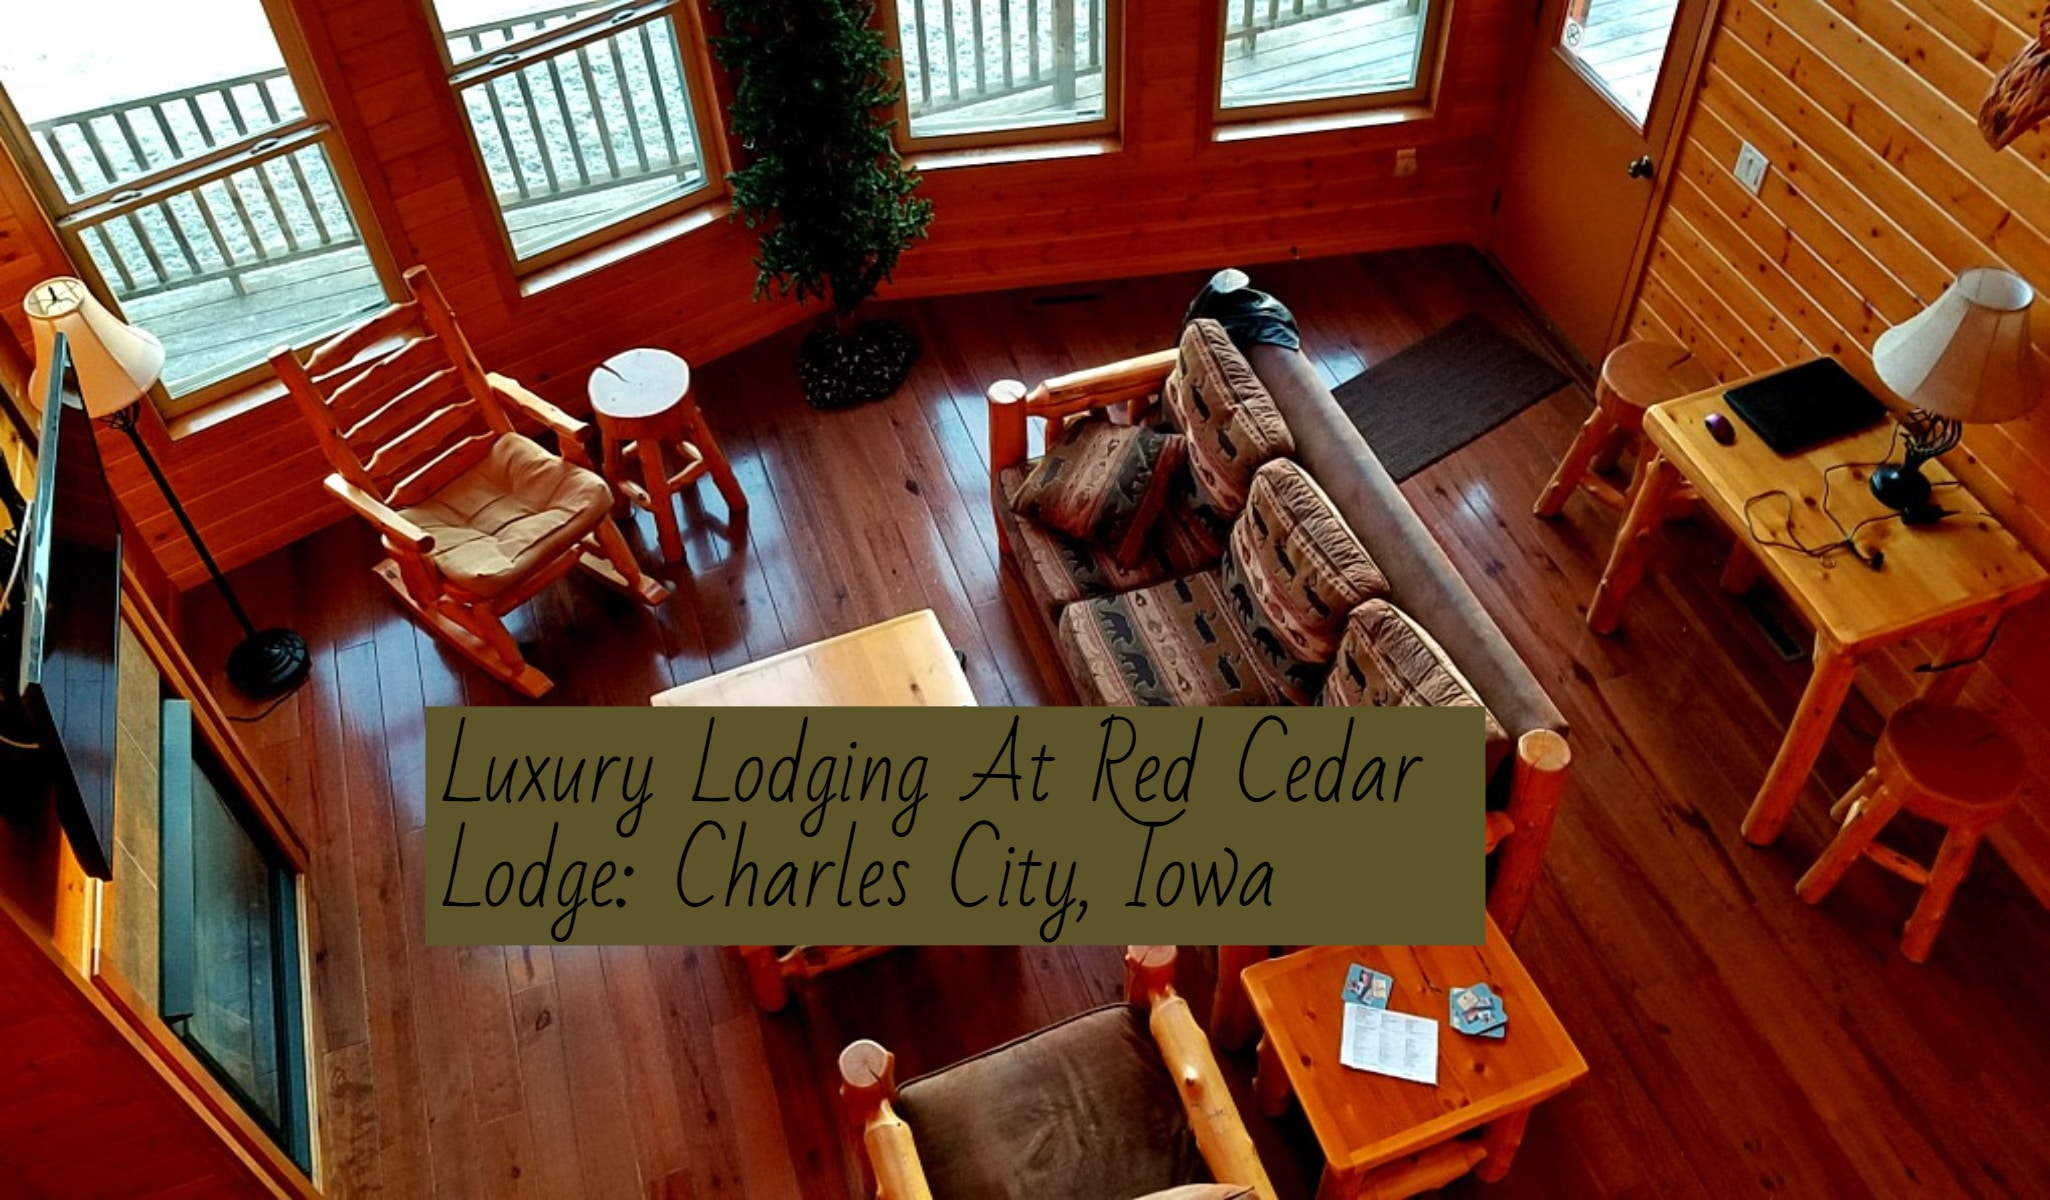 Red Cedar Lodge Charles City, Iowa